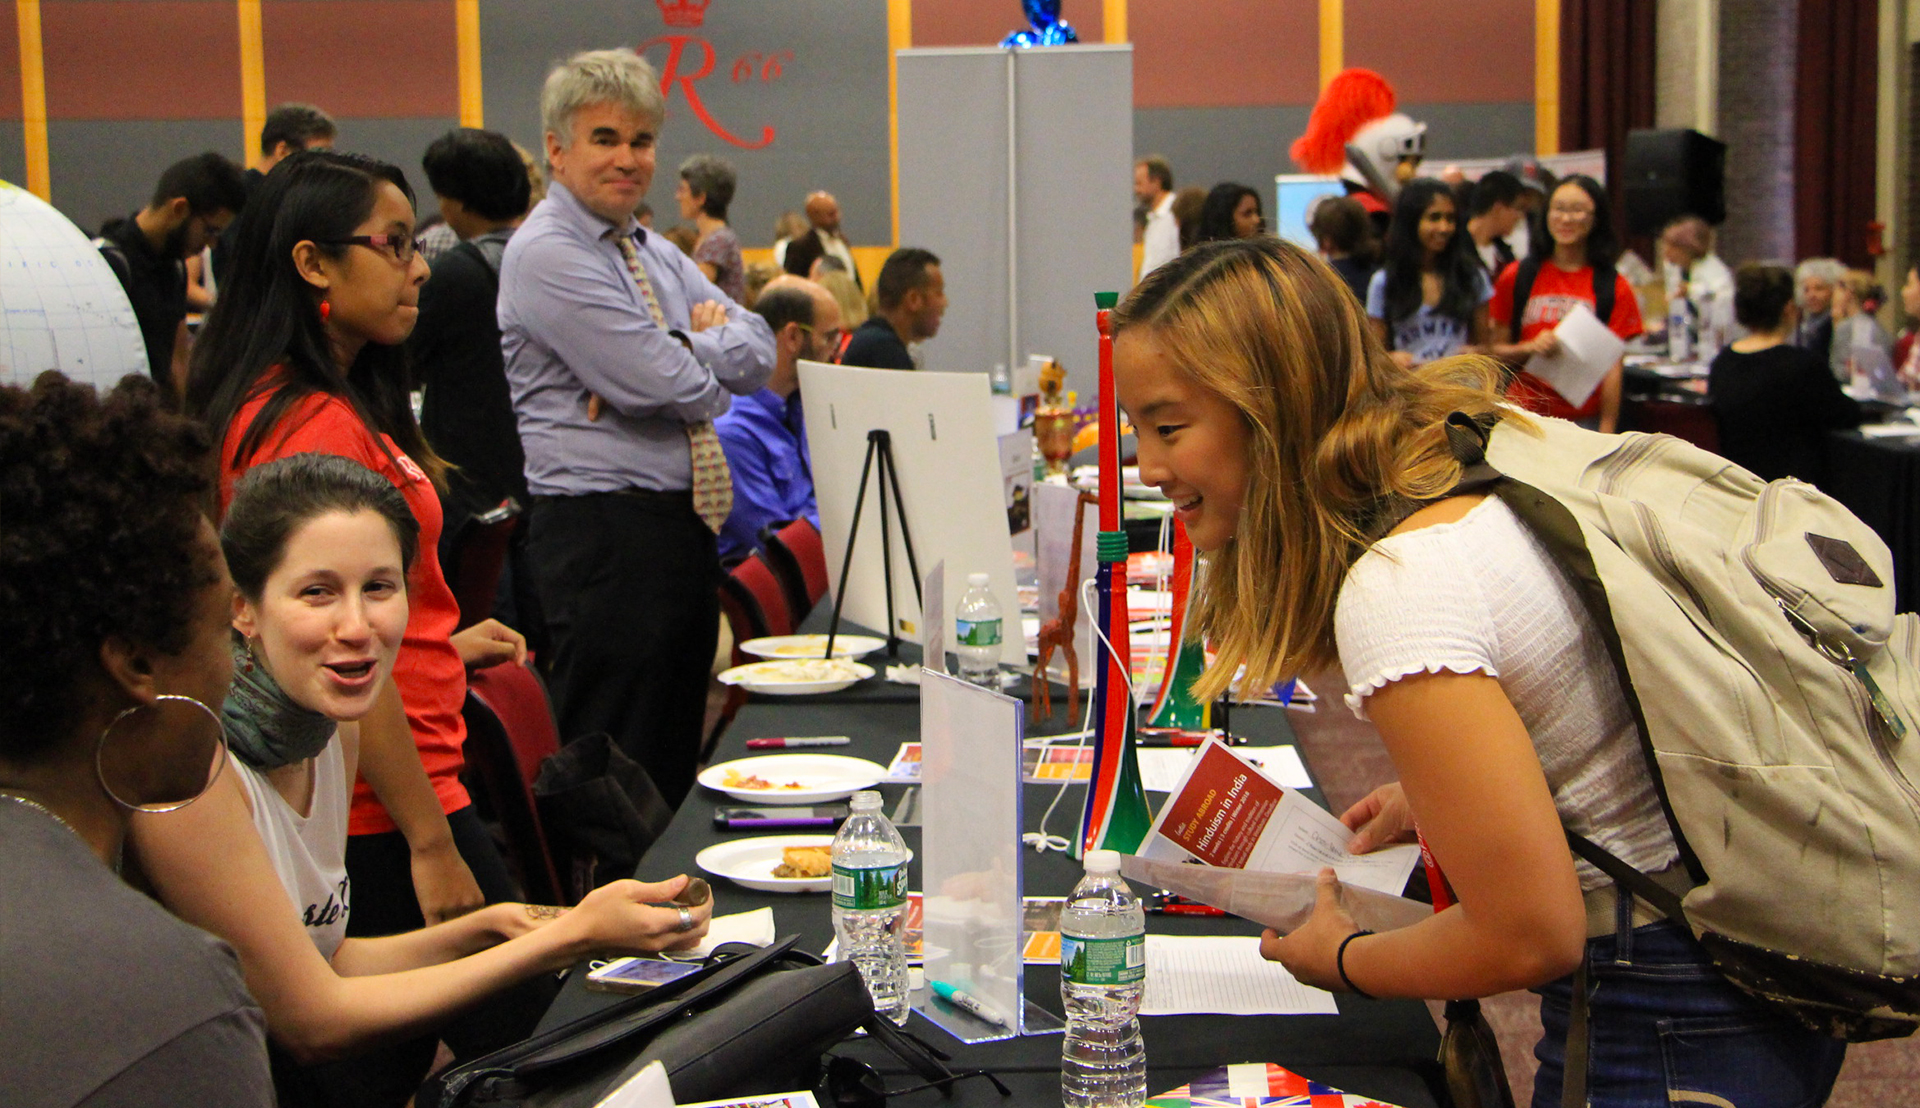 Rutgers Global - Study Abroad Fair, student asks two exhibitors for information